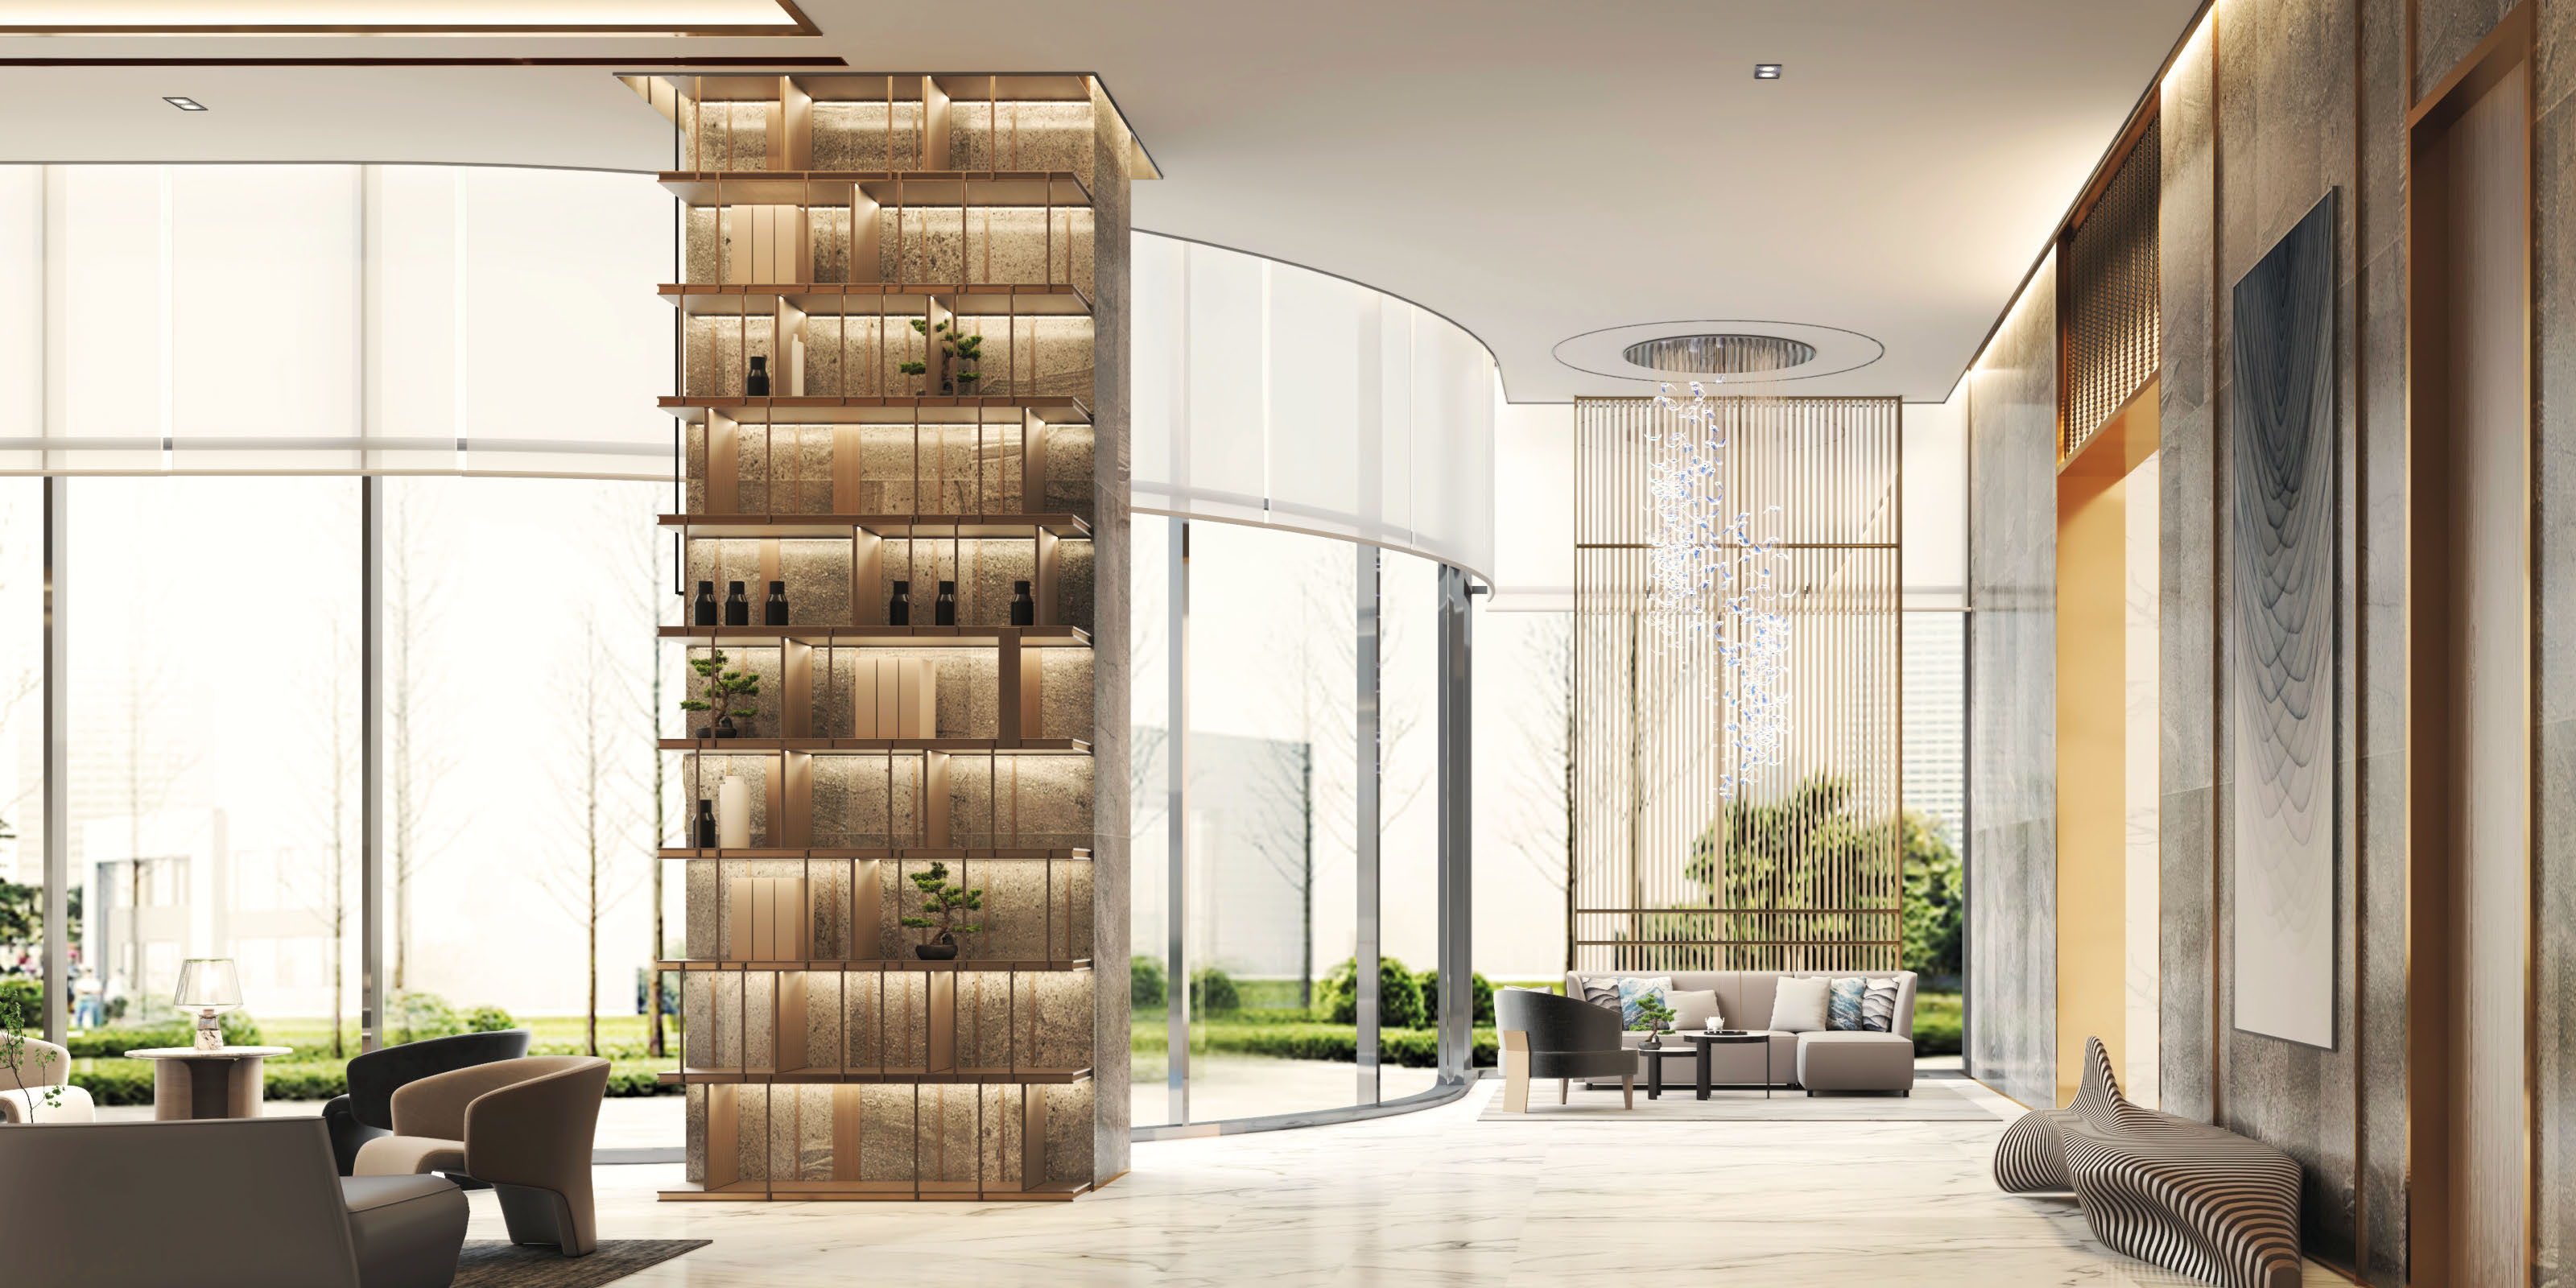 Delight in the grandeur of Sands Residences' lobby enveloped in immaculate white and shimmering gold.